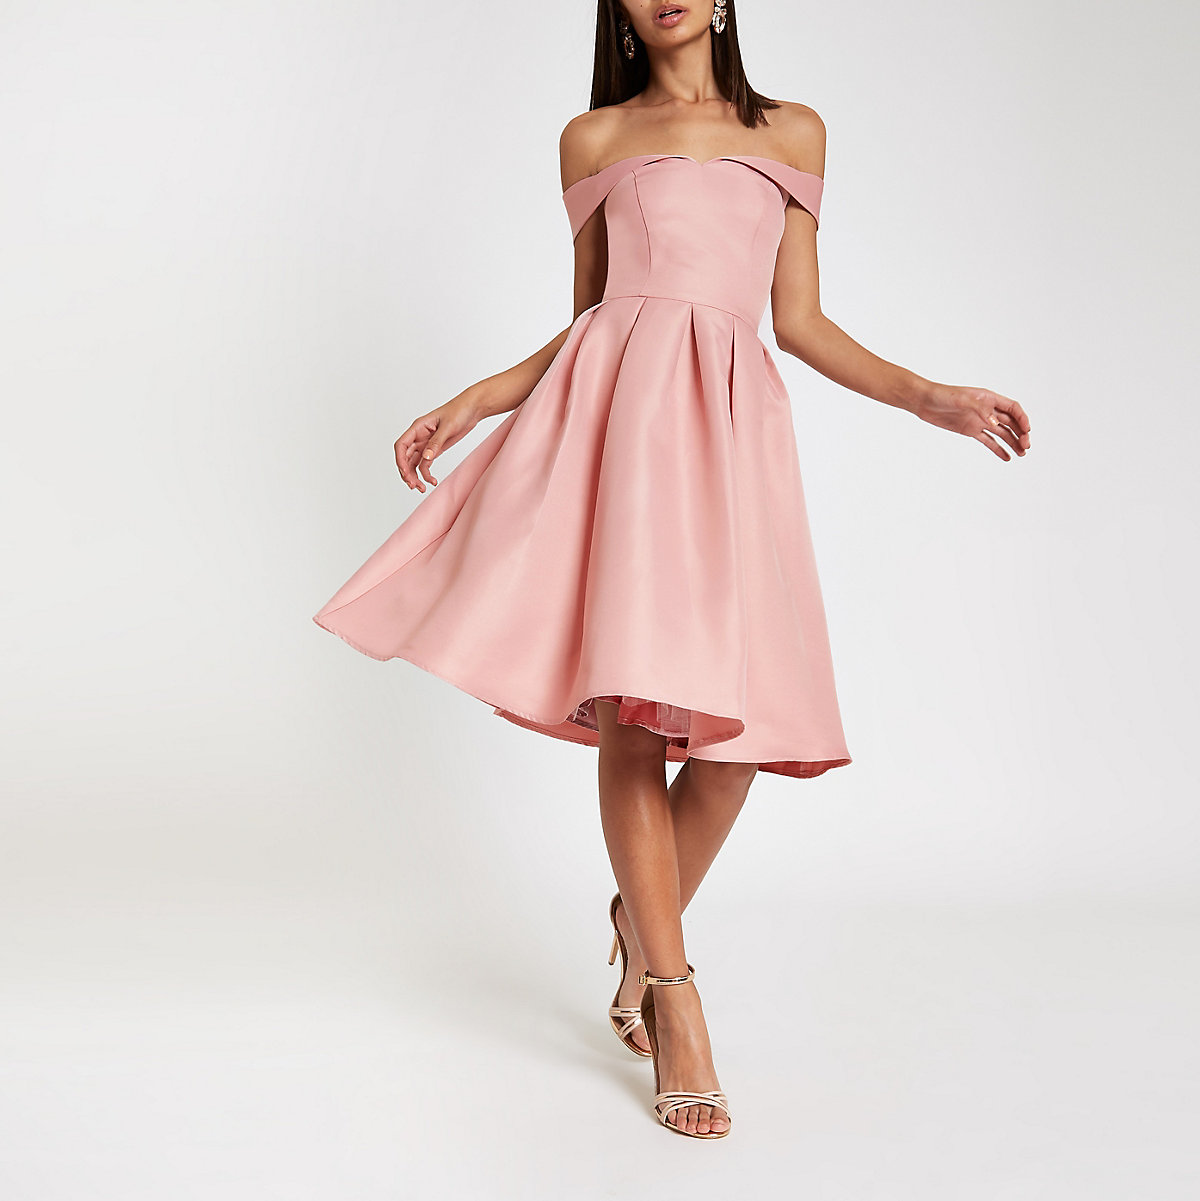 Chi Chi London pink bardot neck prom dress